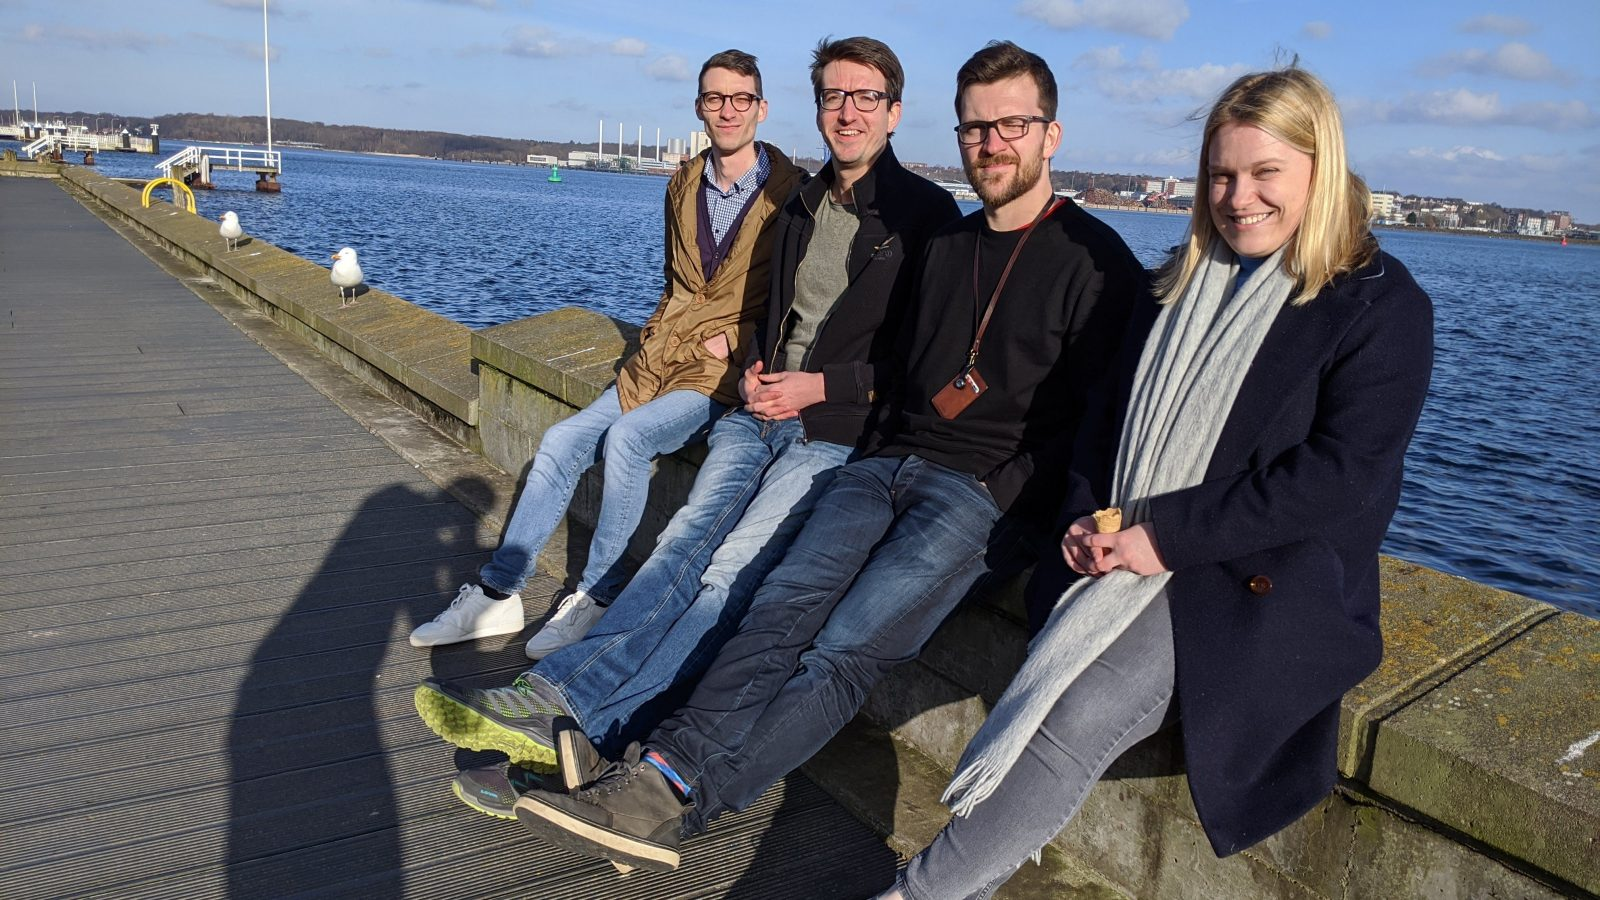 February 2020, pre-social distancing Kiel. One day we will meet again! From left to right: Stefano Bertuletti, Robbin Romijnders, Clint Hansen, and Kirsty Scott.